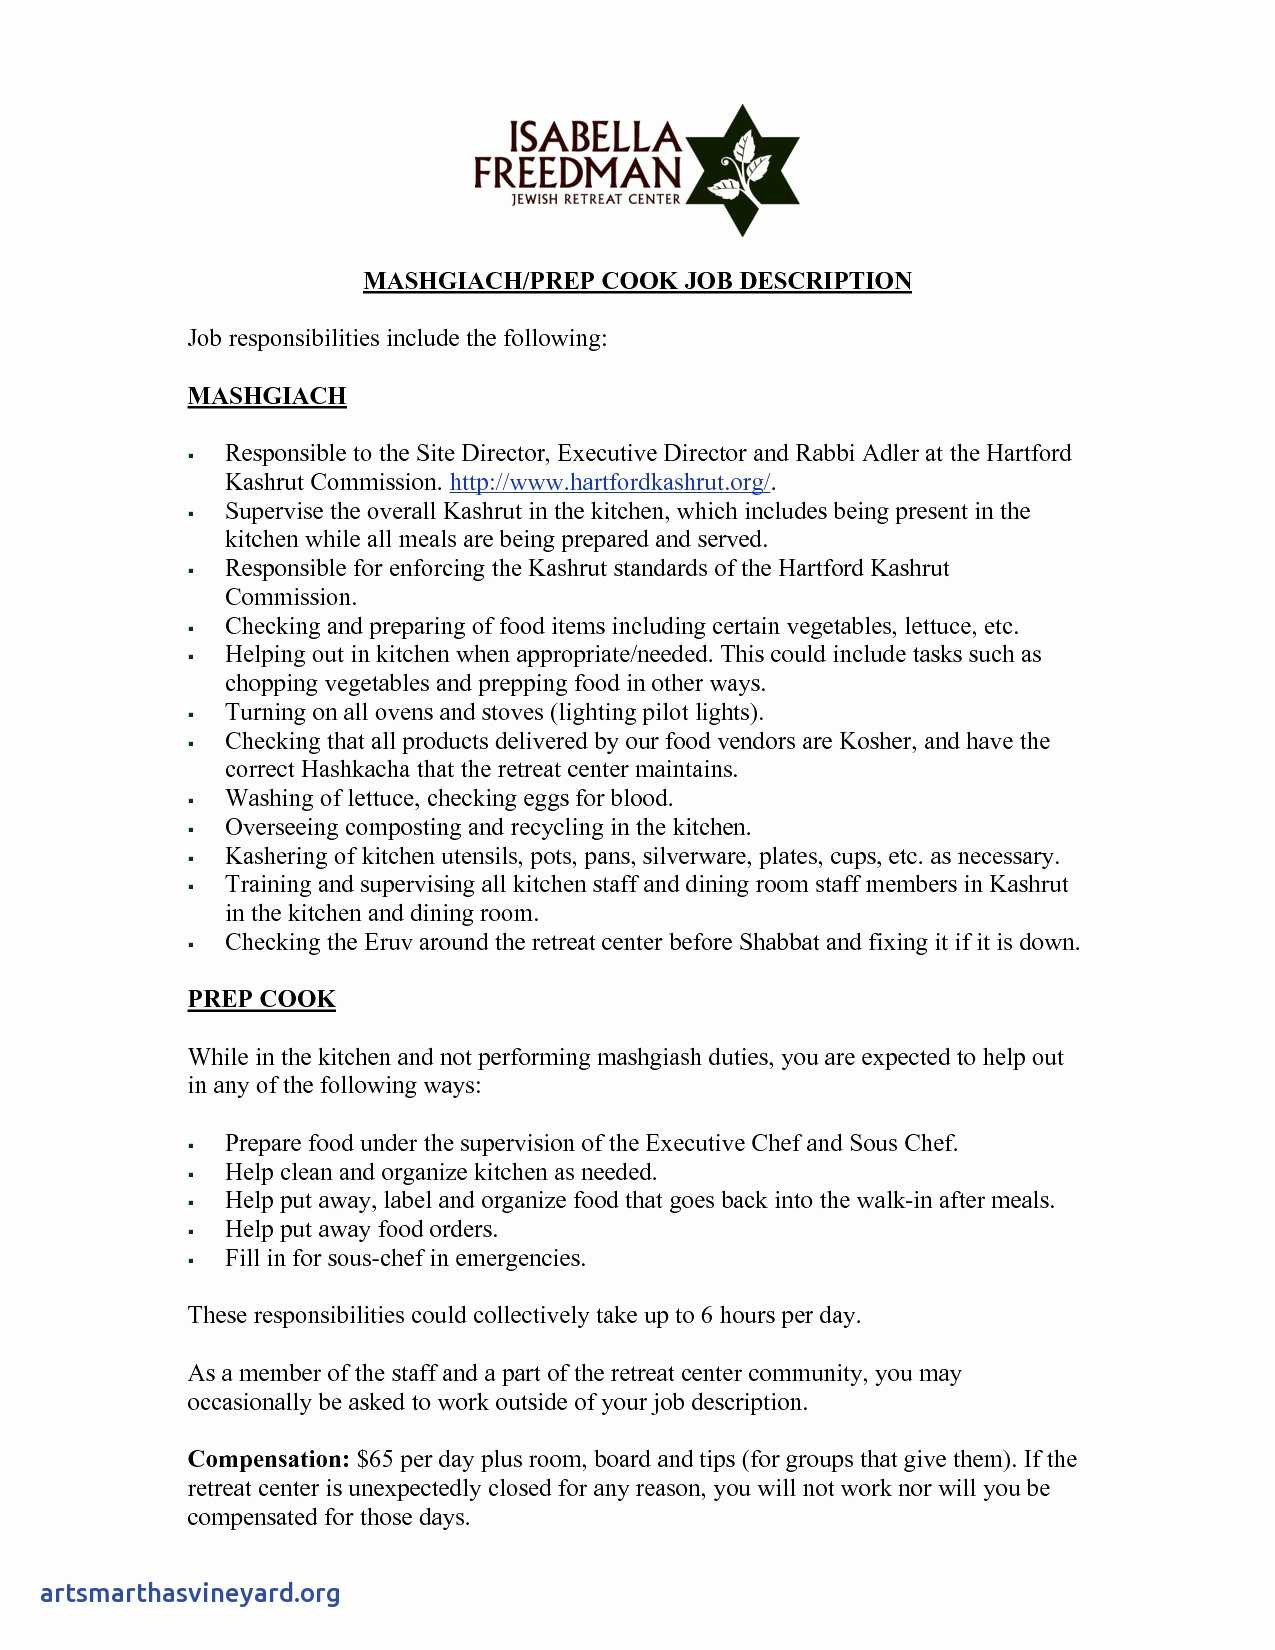 Resume Cover Letter Template Free - Free Resume Cover Letter Templates New Resume Doc Template Luxury